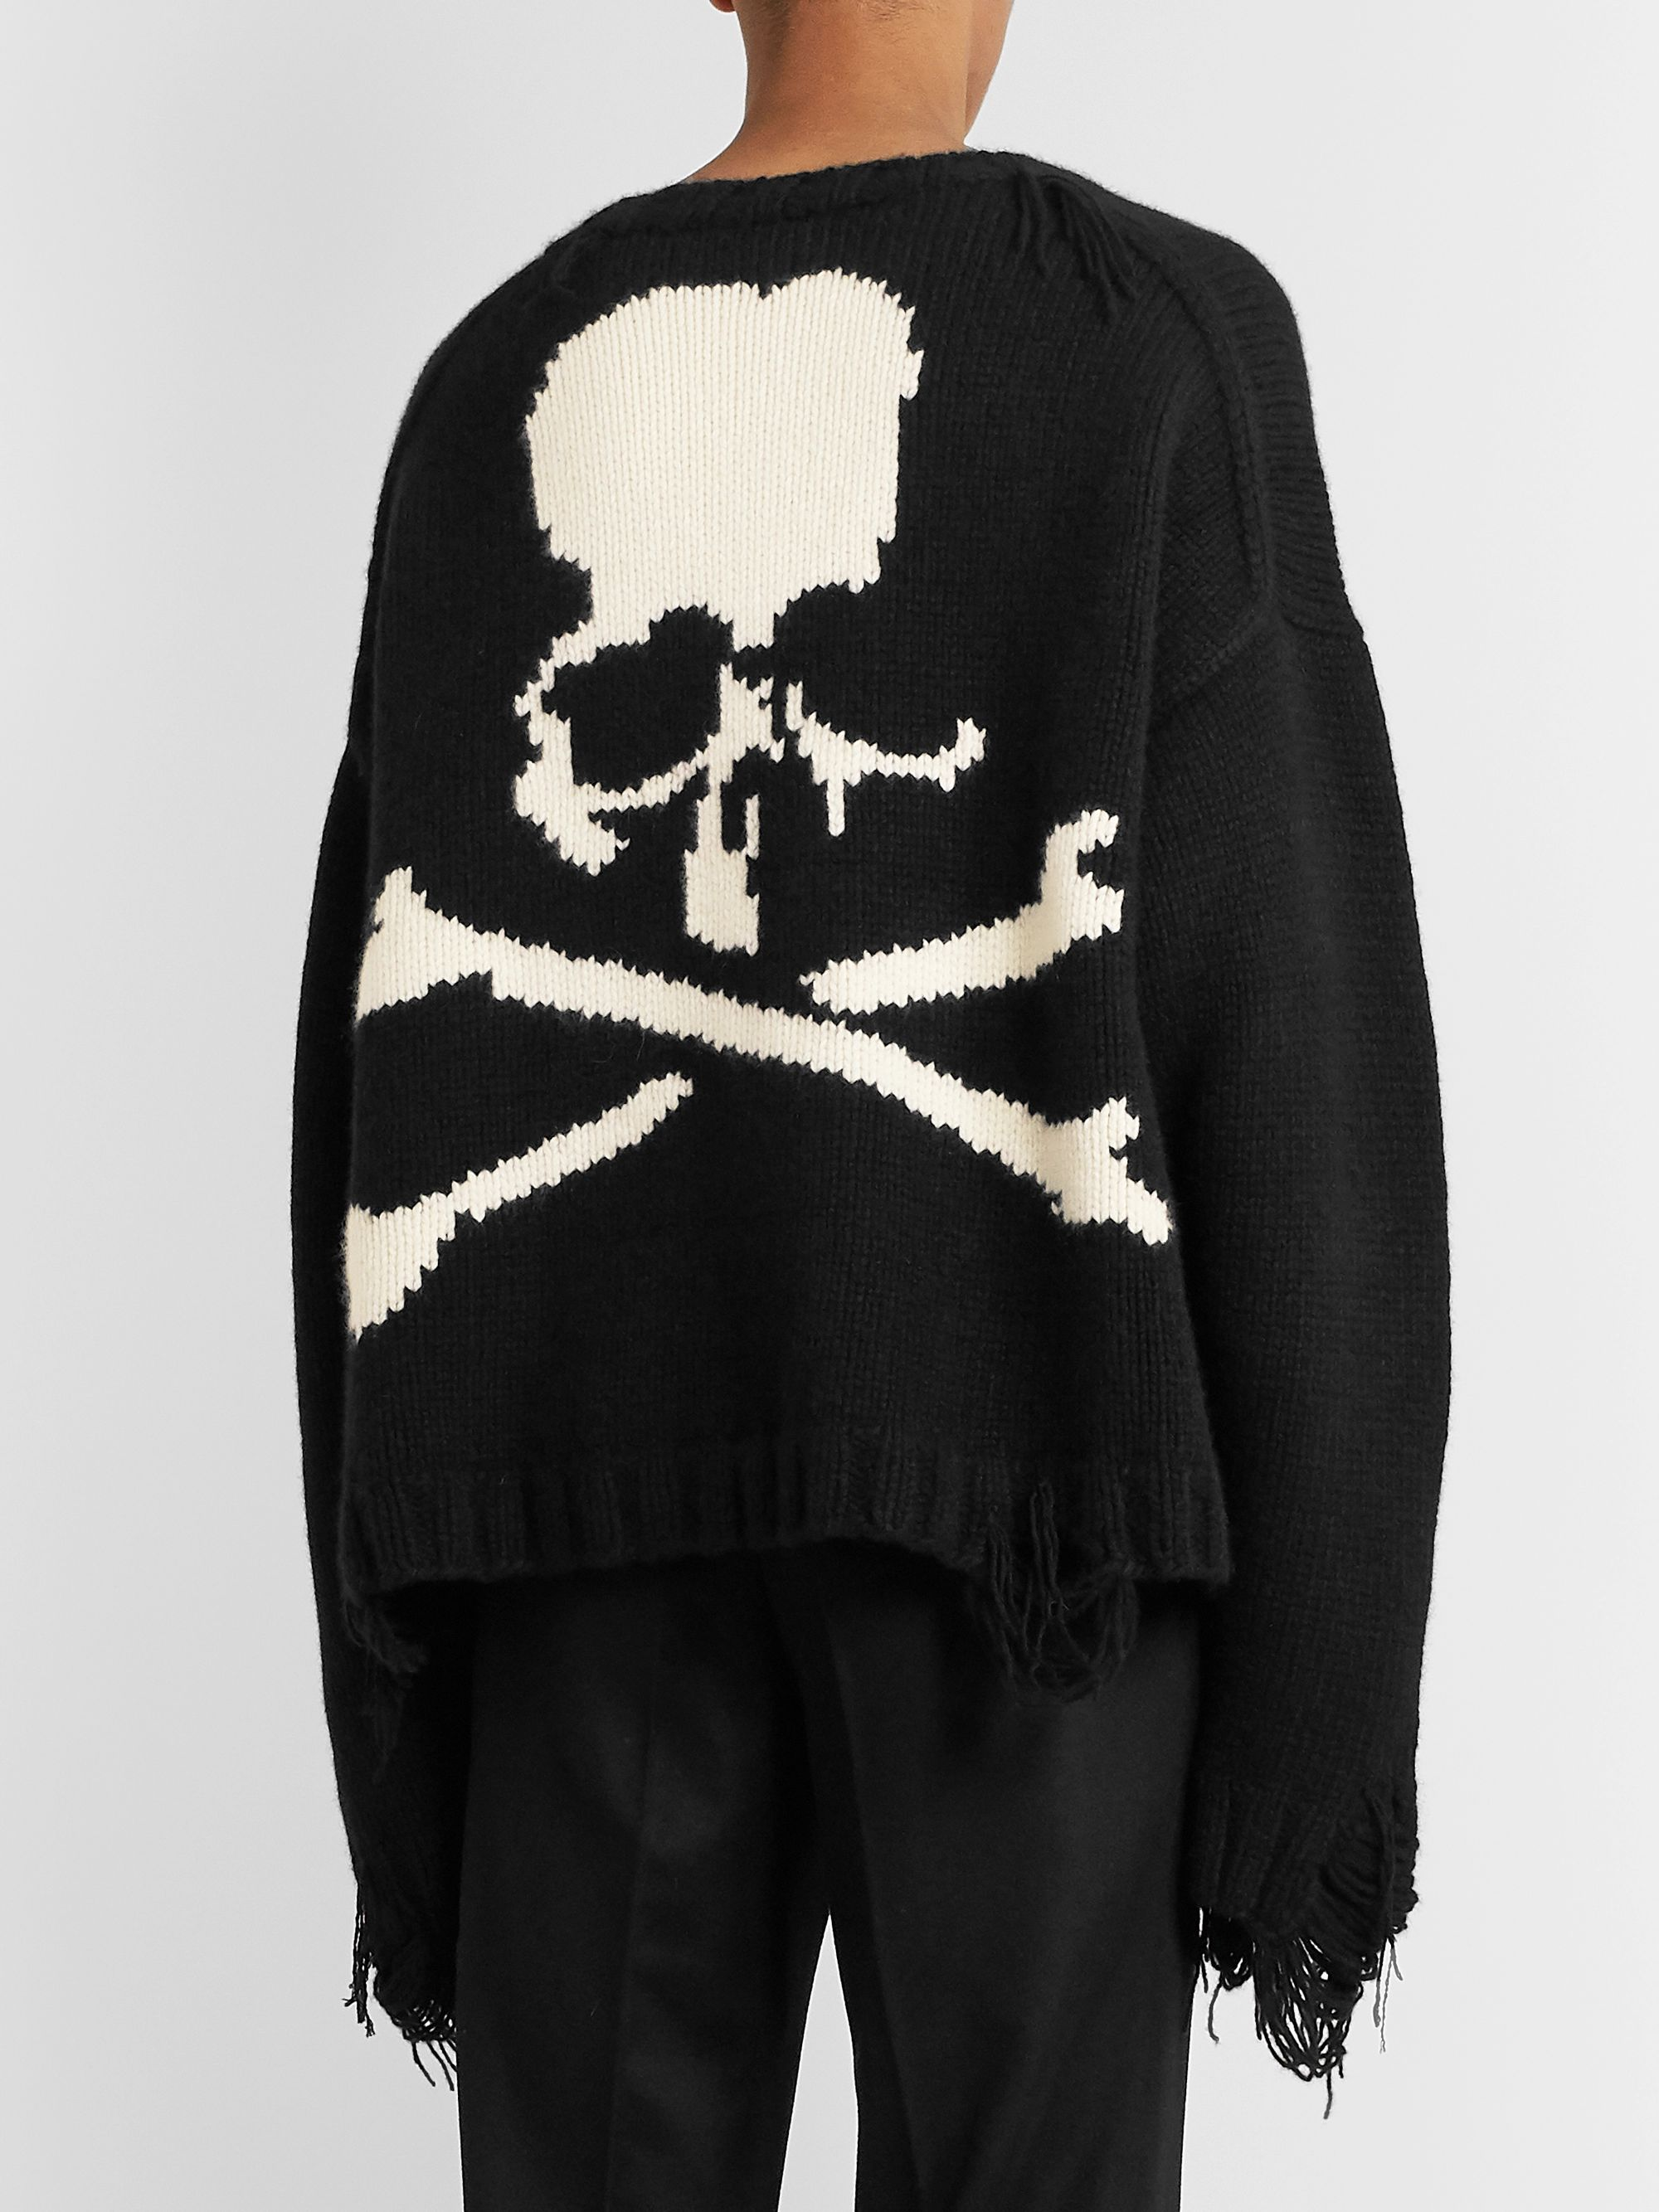 MASTERMIND WORLD Oversized Distressed Intarsia Cashmere Sweater